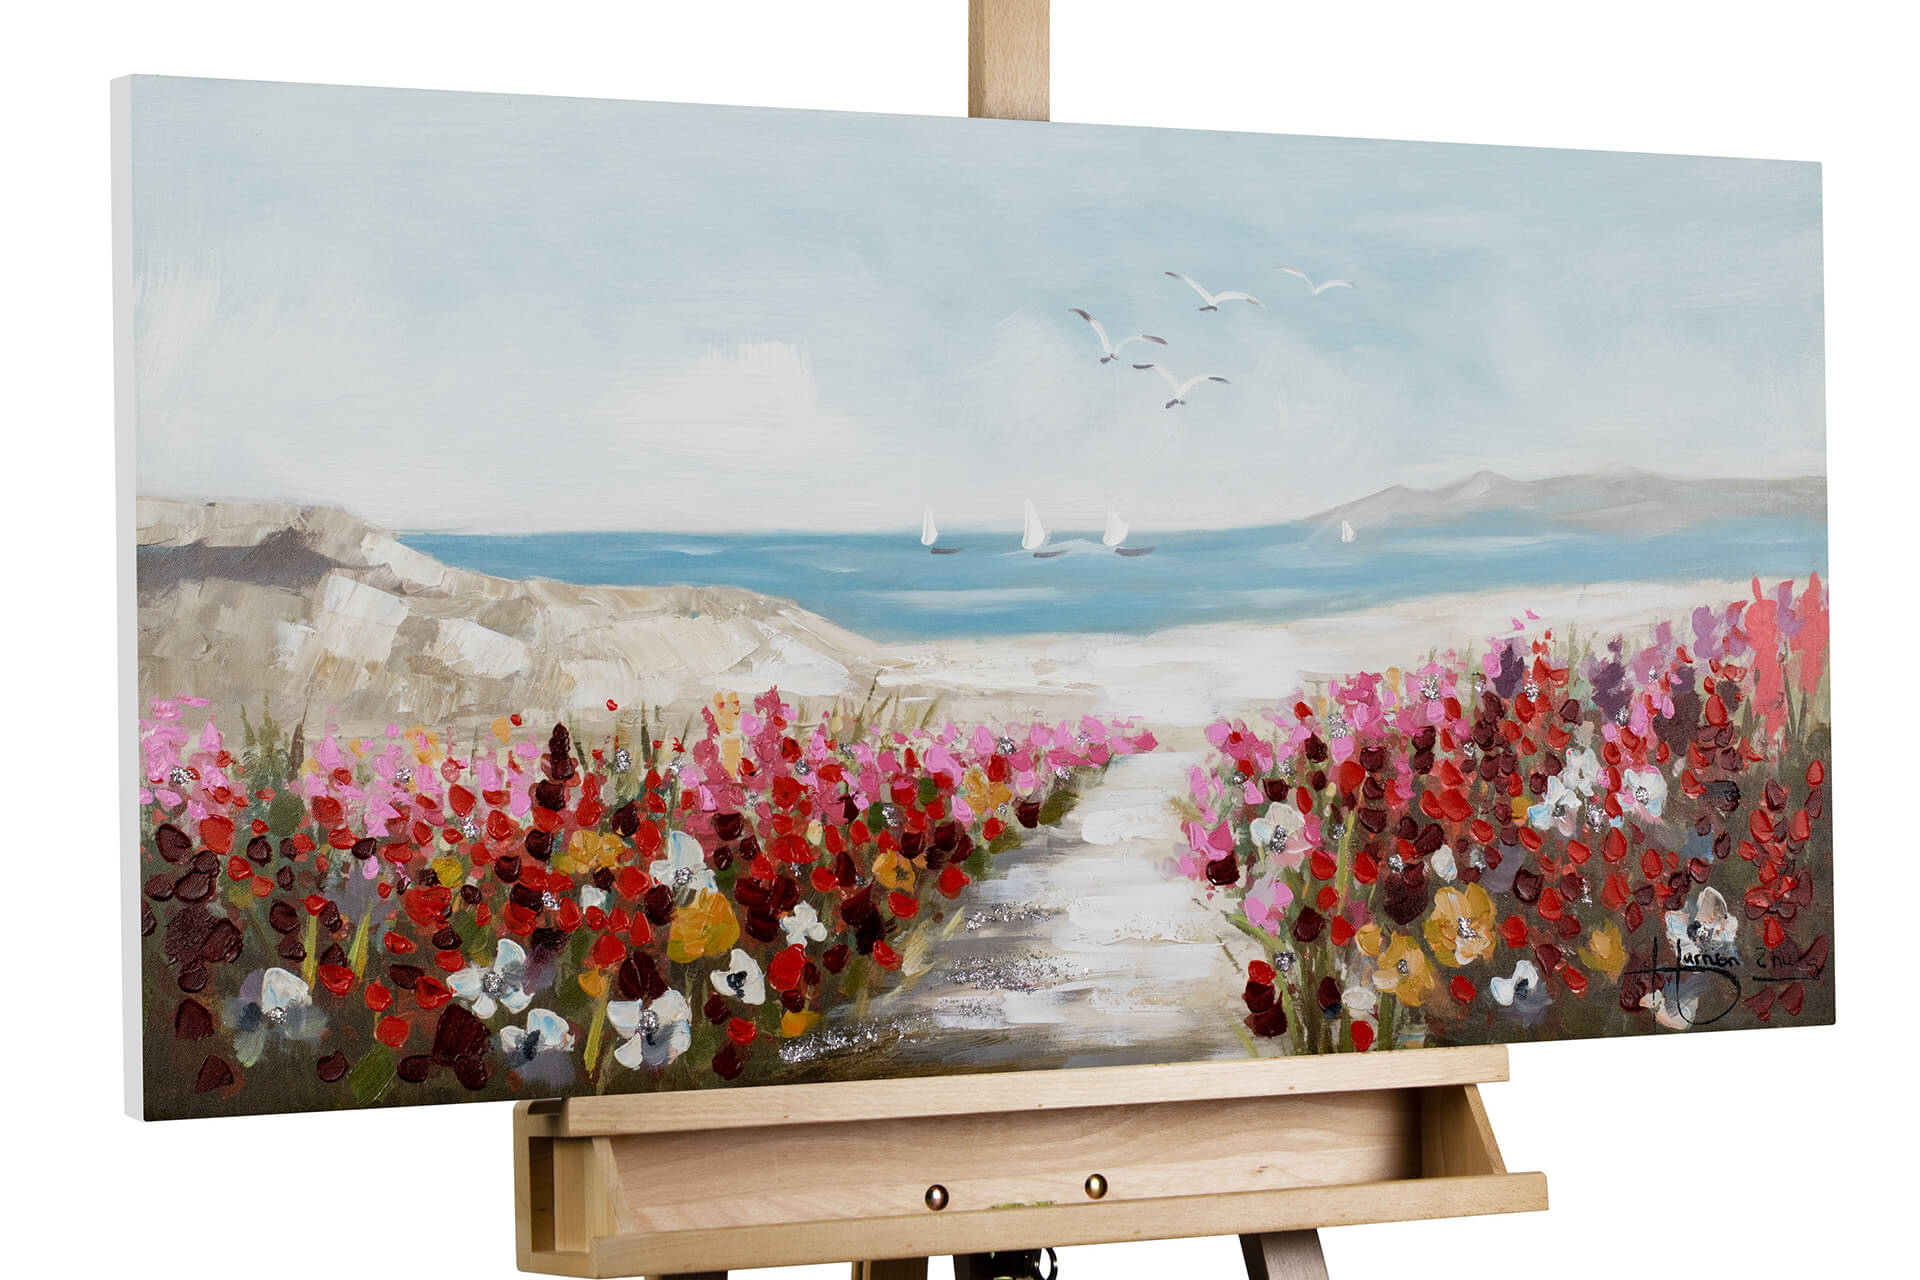 Table De Jardin Promo Beau Acrylic Painting Jardin De Playa 39×20 Inches Of 29 Génial Table De Jardin Promo